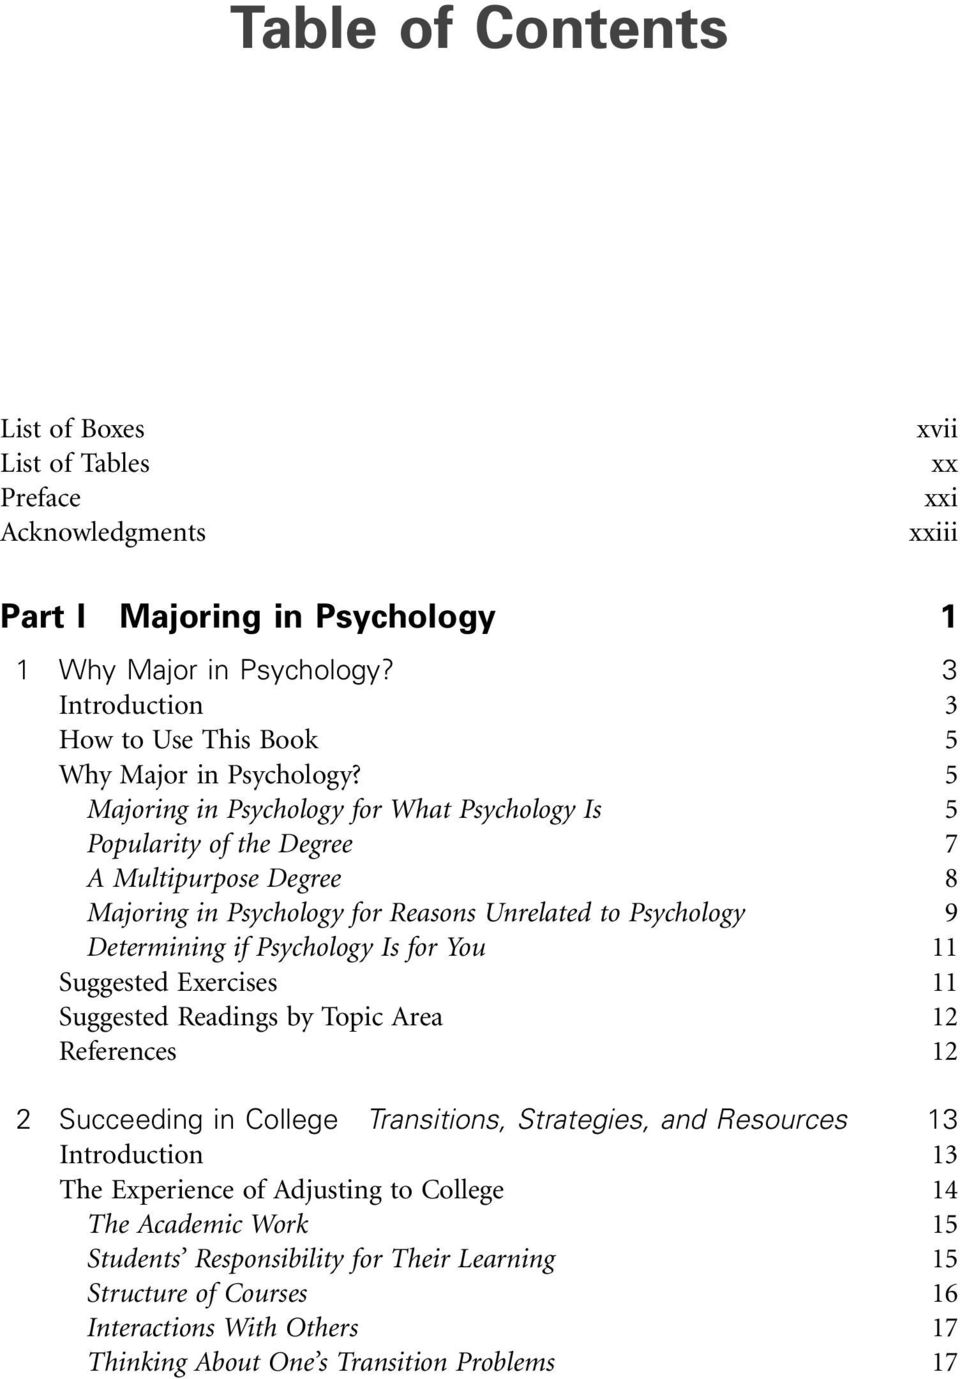 5 Majoring in Psychology for What Psychology Is 5 Popularity of the Degree 7 A Multipurpose Degree 8 Majoring in Psychology for Reasons Unrelated to Psychology 9 Determining if Psychology Is